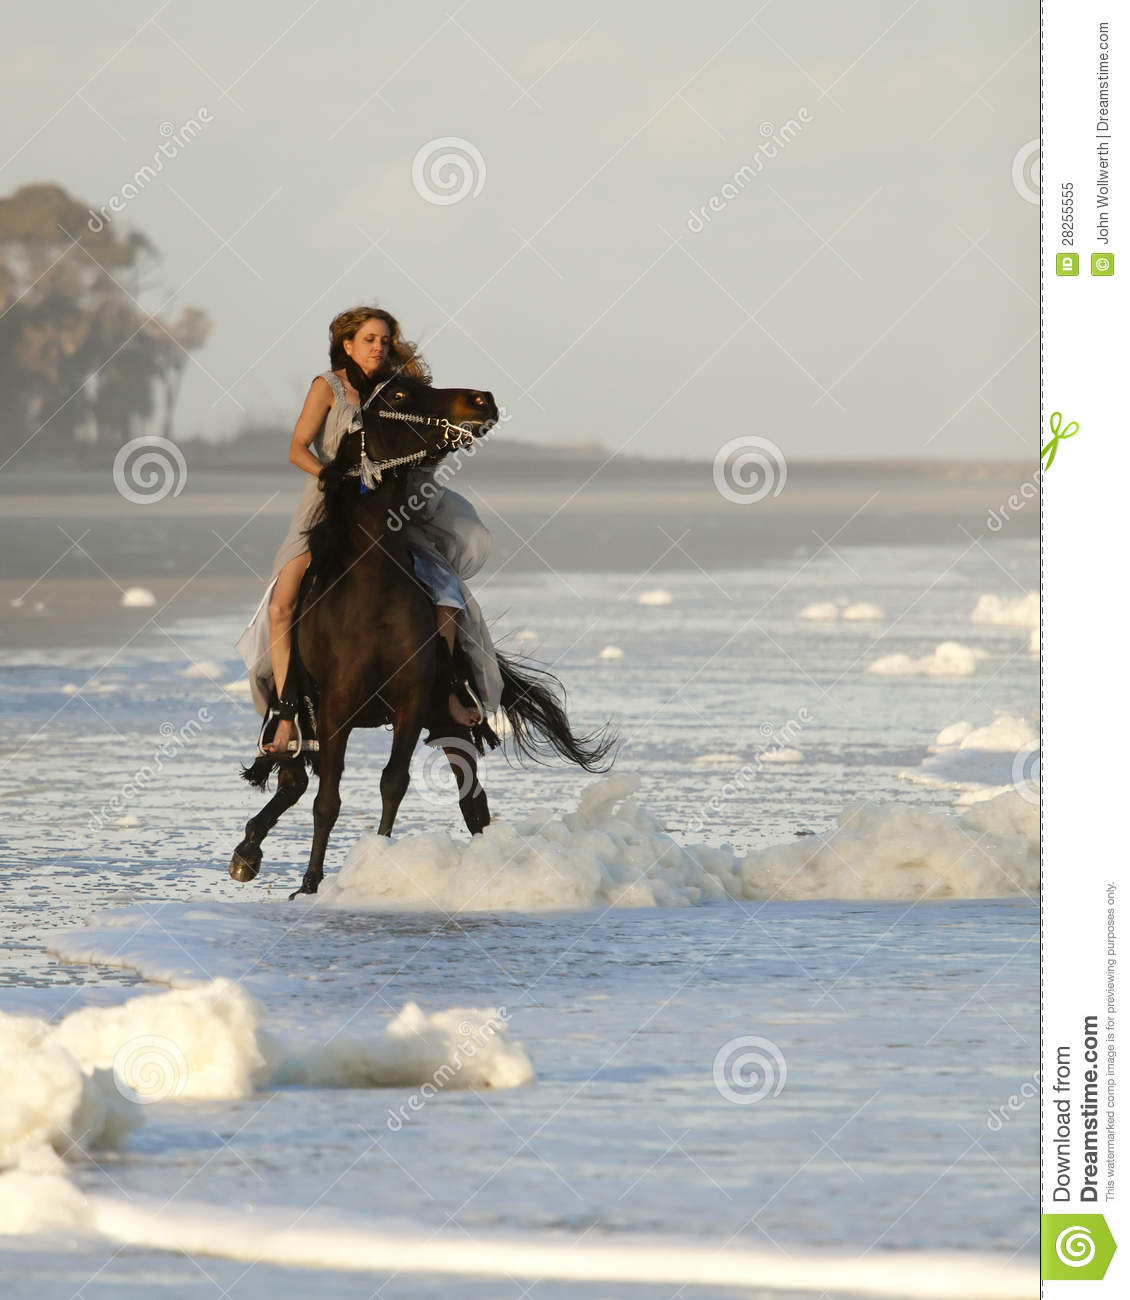 Woman Riding Wild Horse On Beach Stock Image Image Of